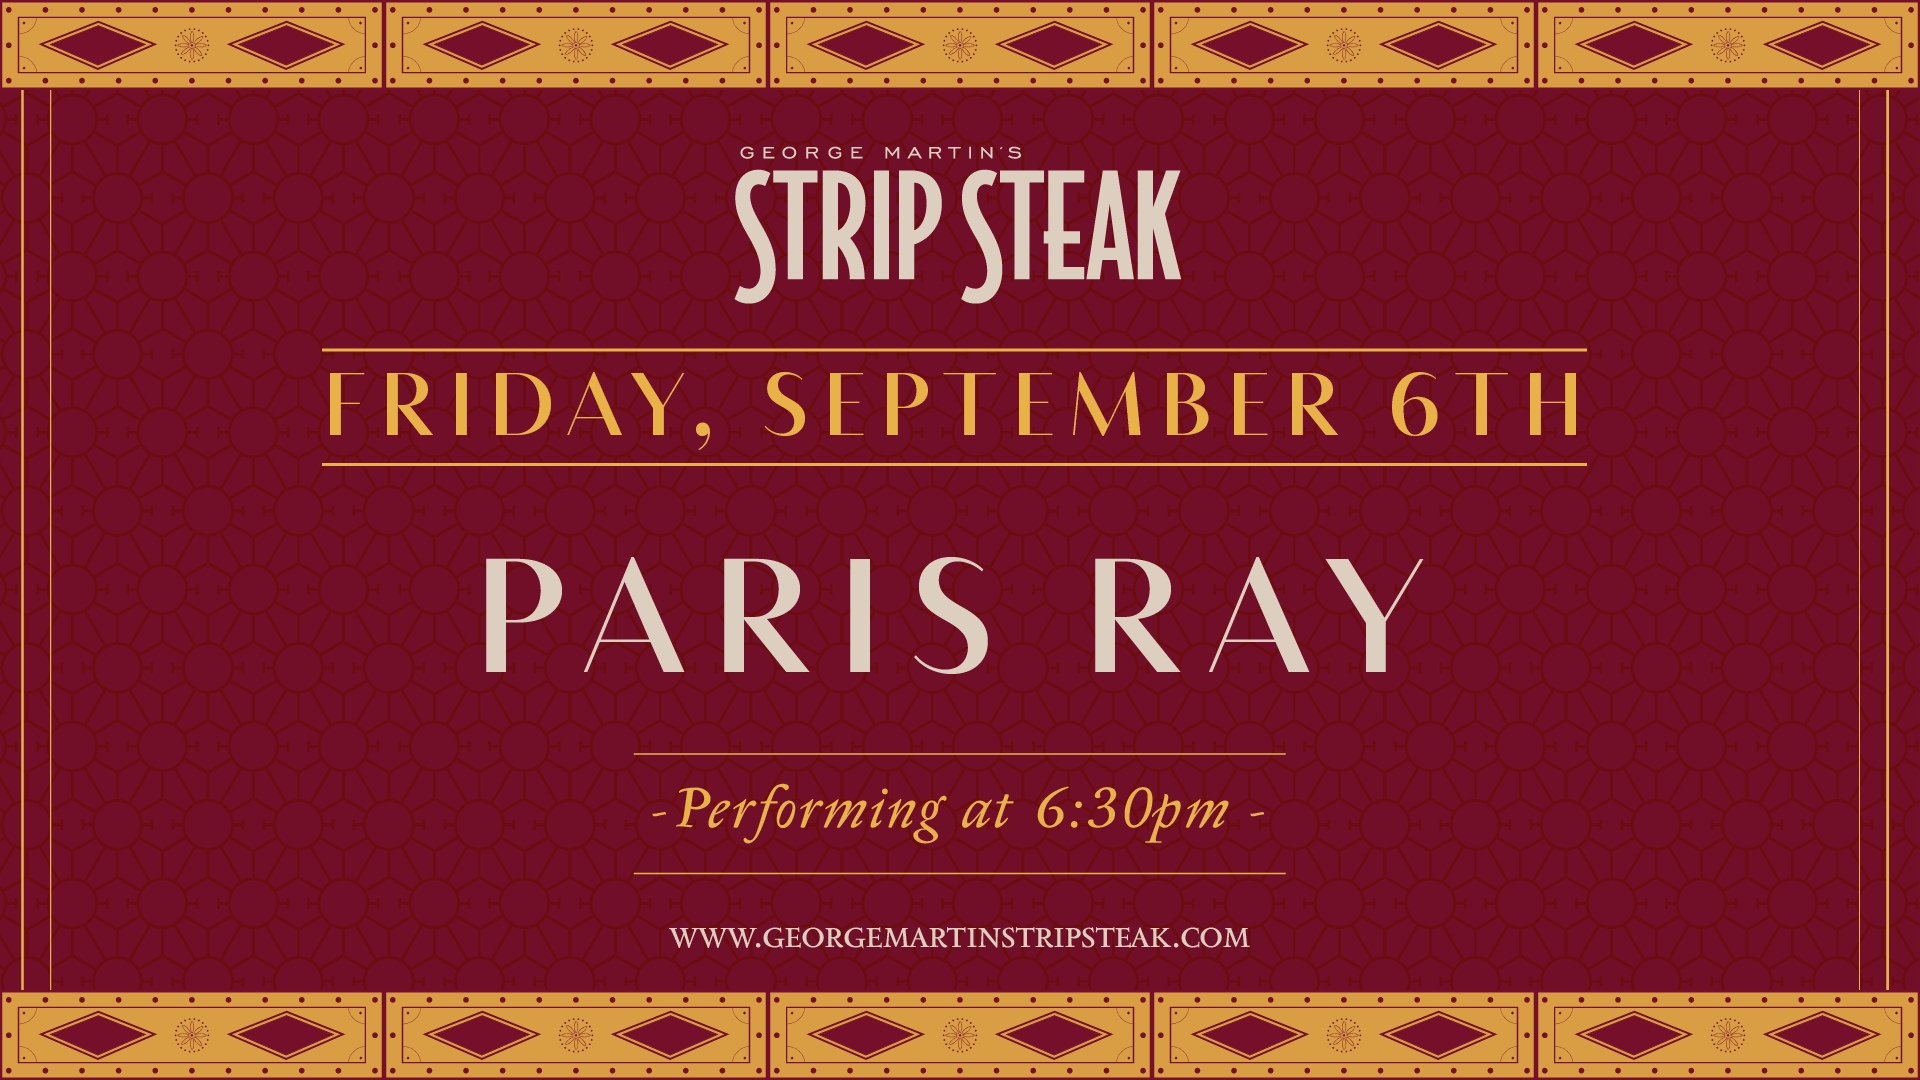 Flyer for live music with Paris Ray on Friday, September 6th at 6:30pm